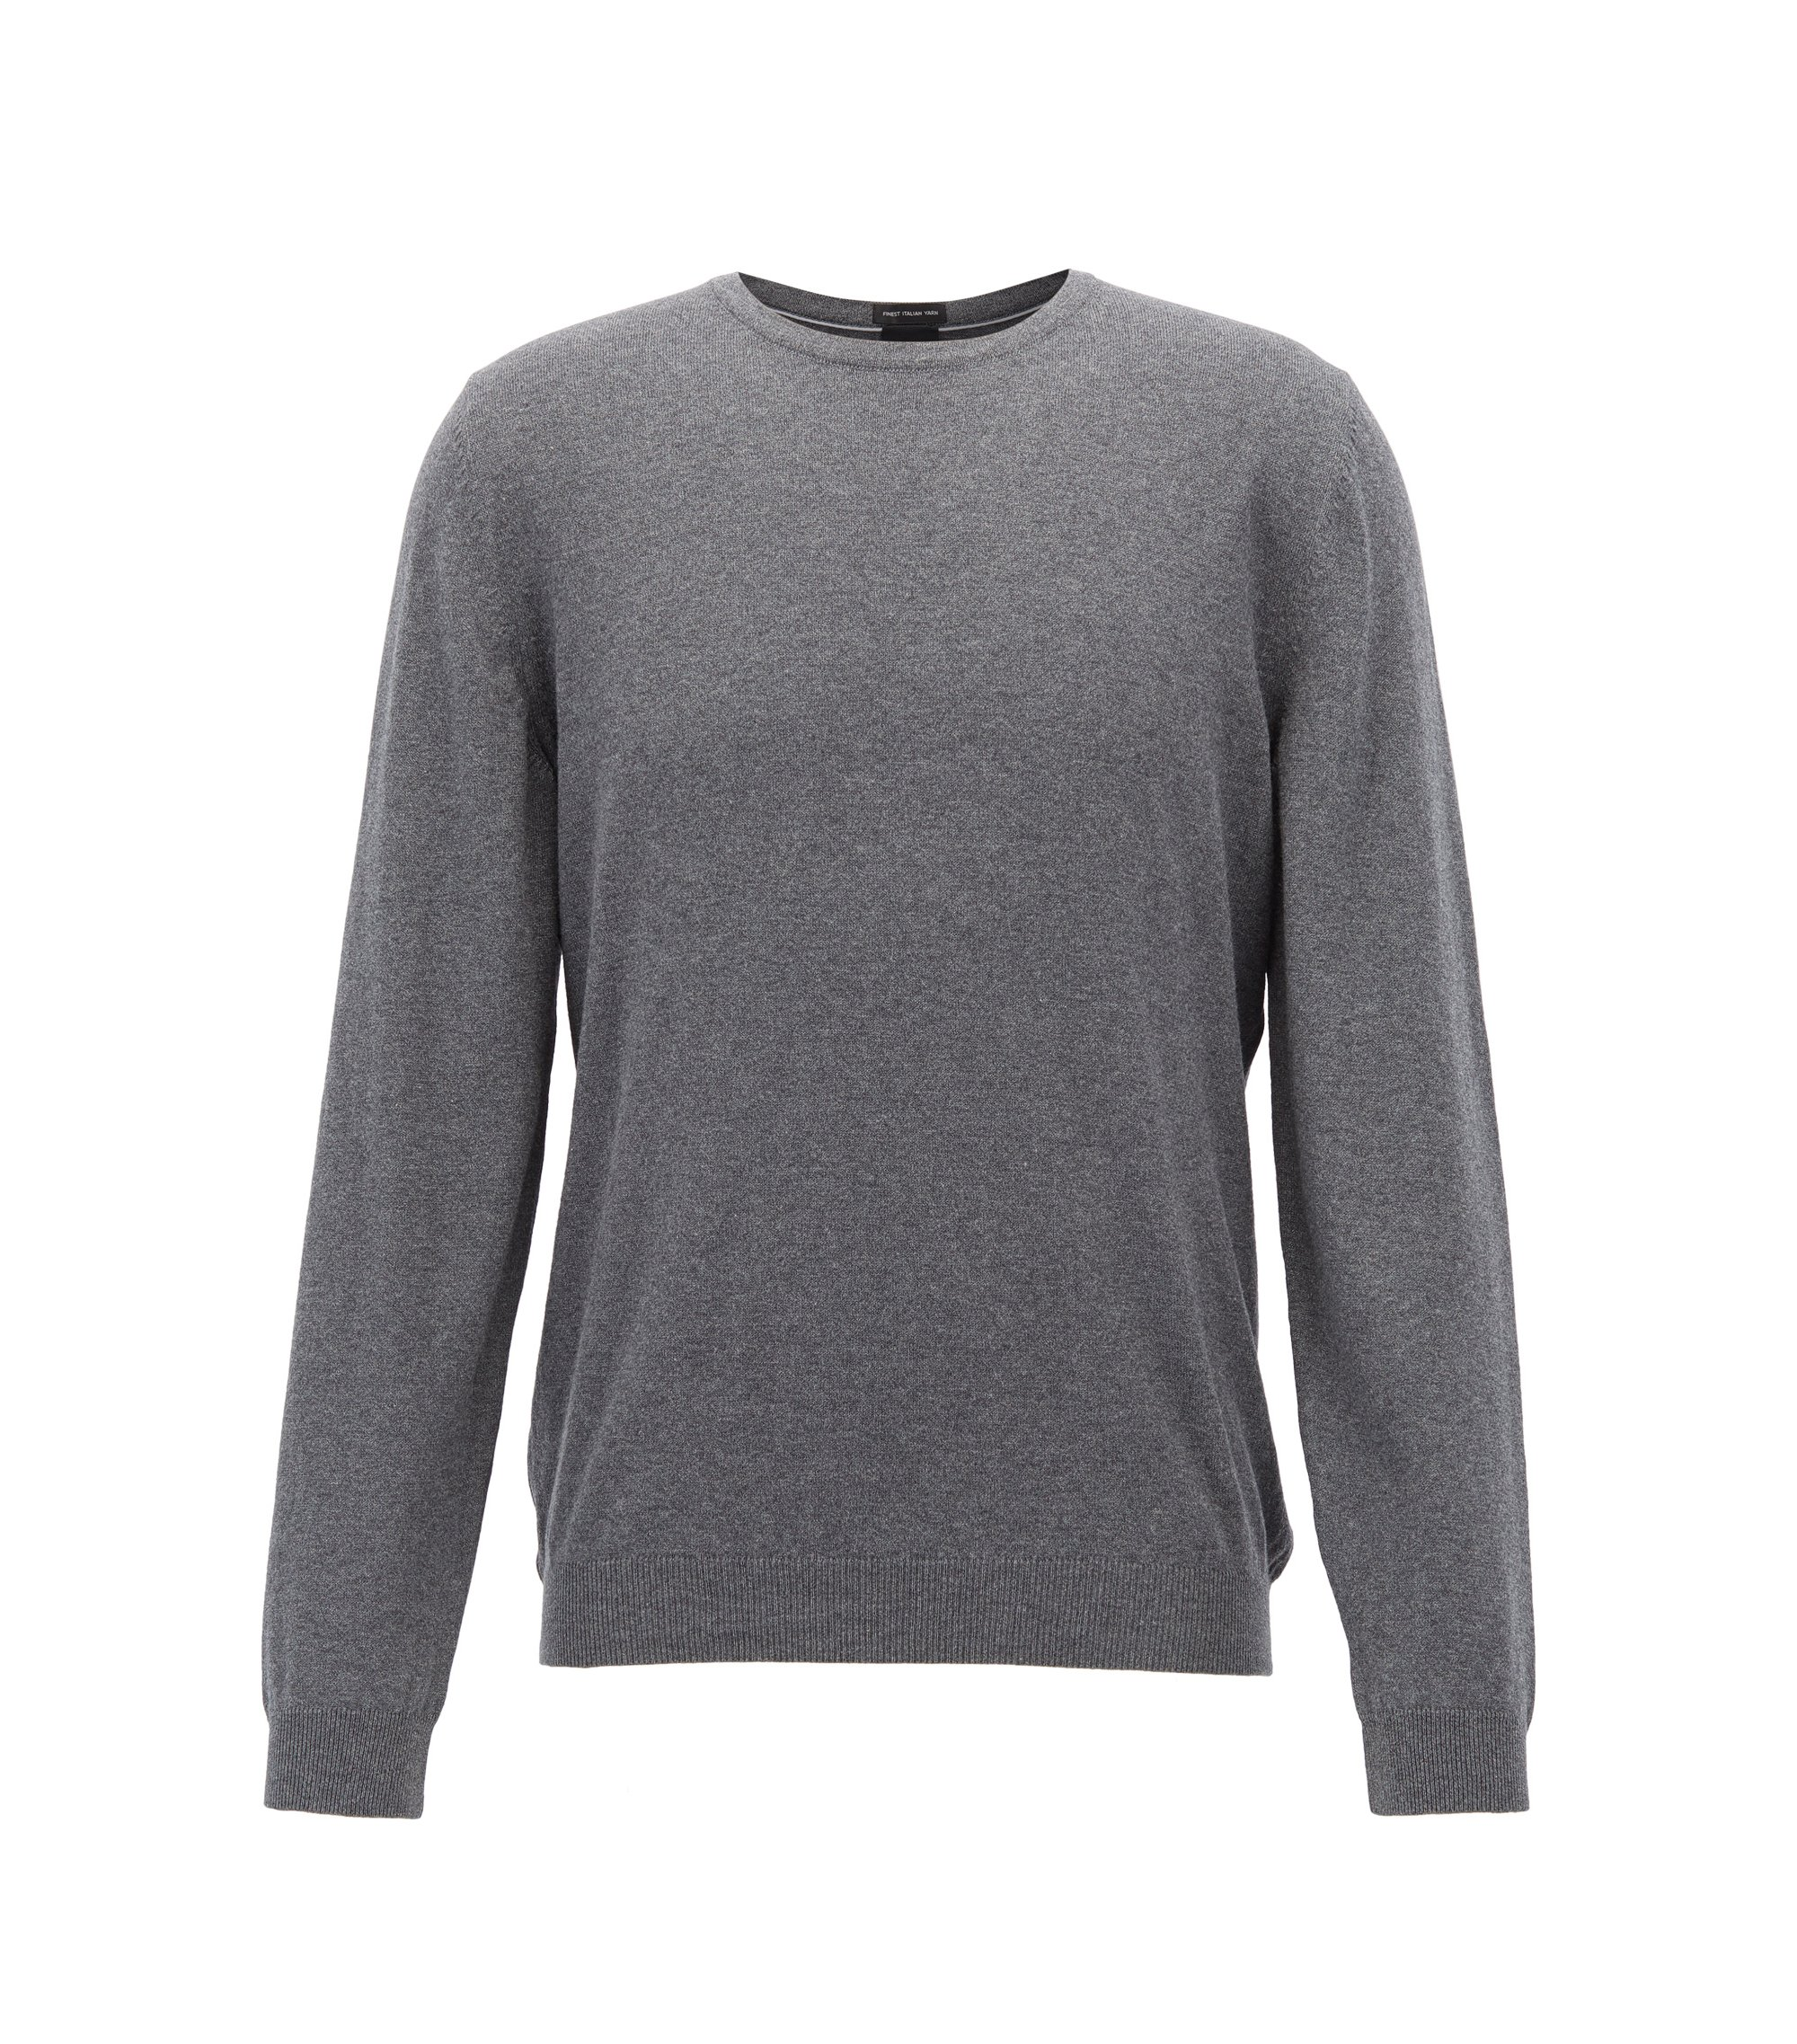 Crew-neck sweater in washed Egyptian cotton, Grey